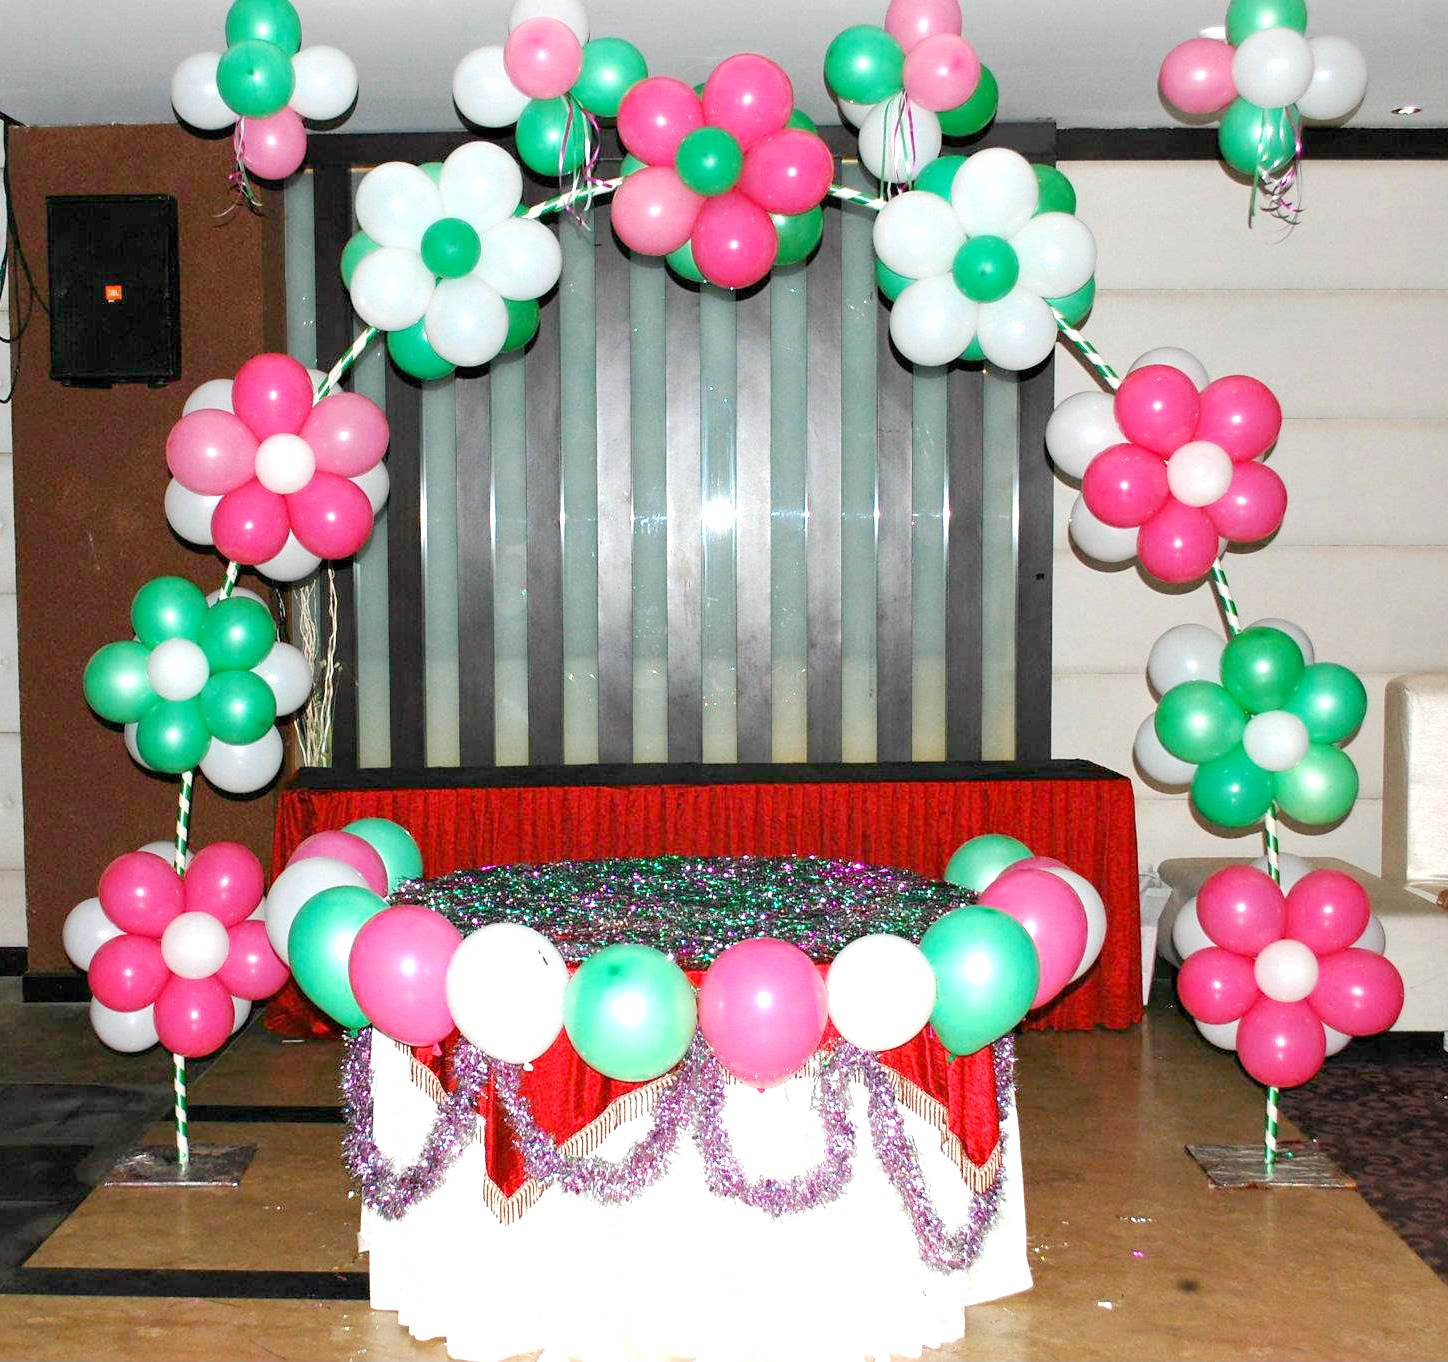 Balloon Decoration Ideas That Will Inflate the Fun for Your